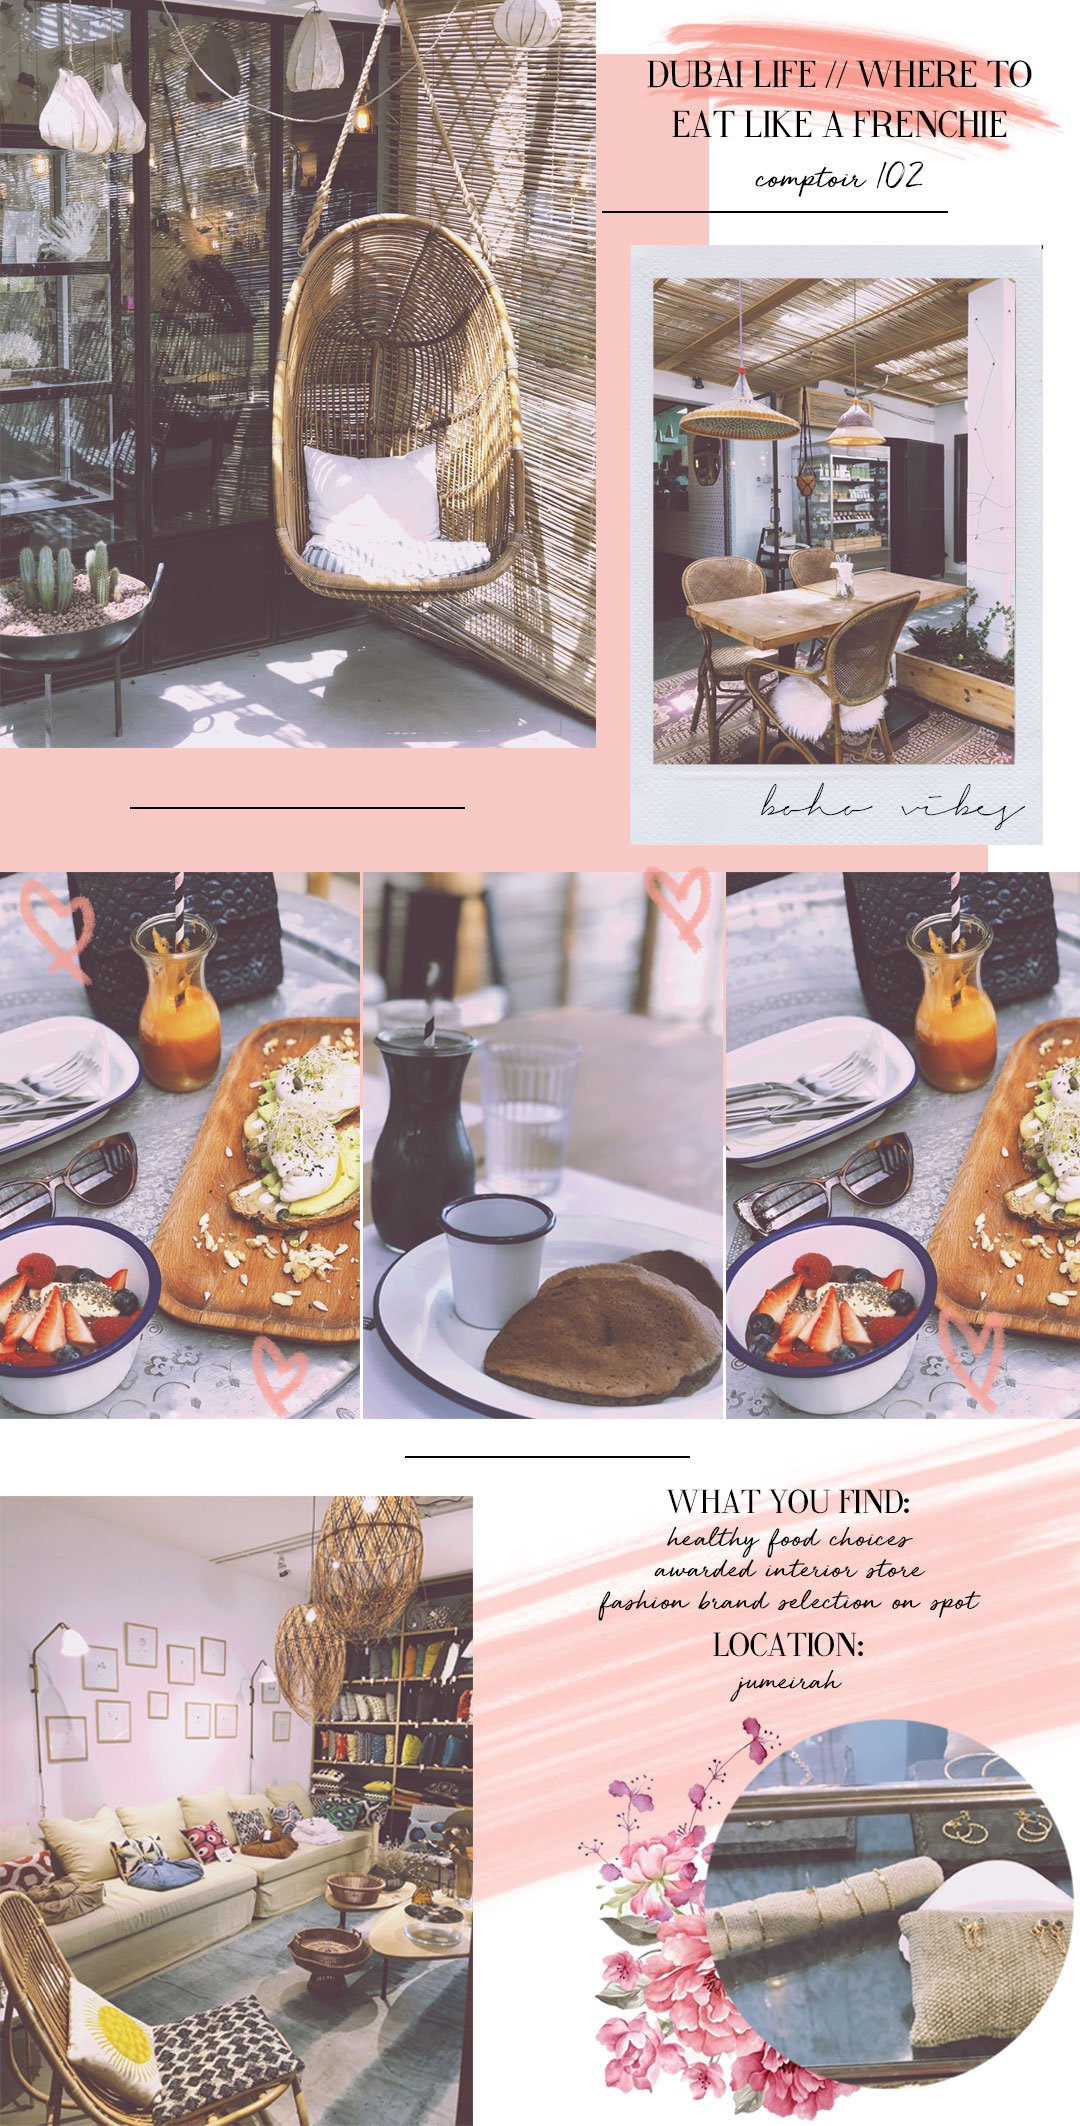 Where to eat like a French in Dubai: Comptoir 102 and La Cantine du Faubourg